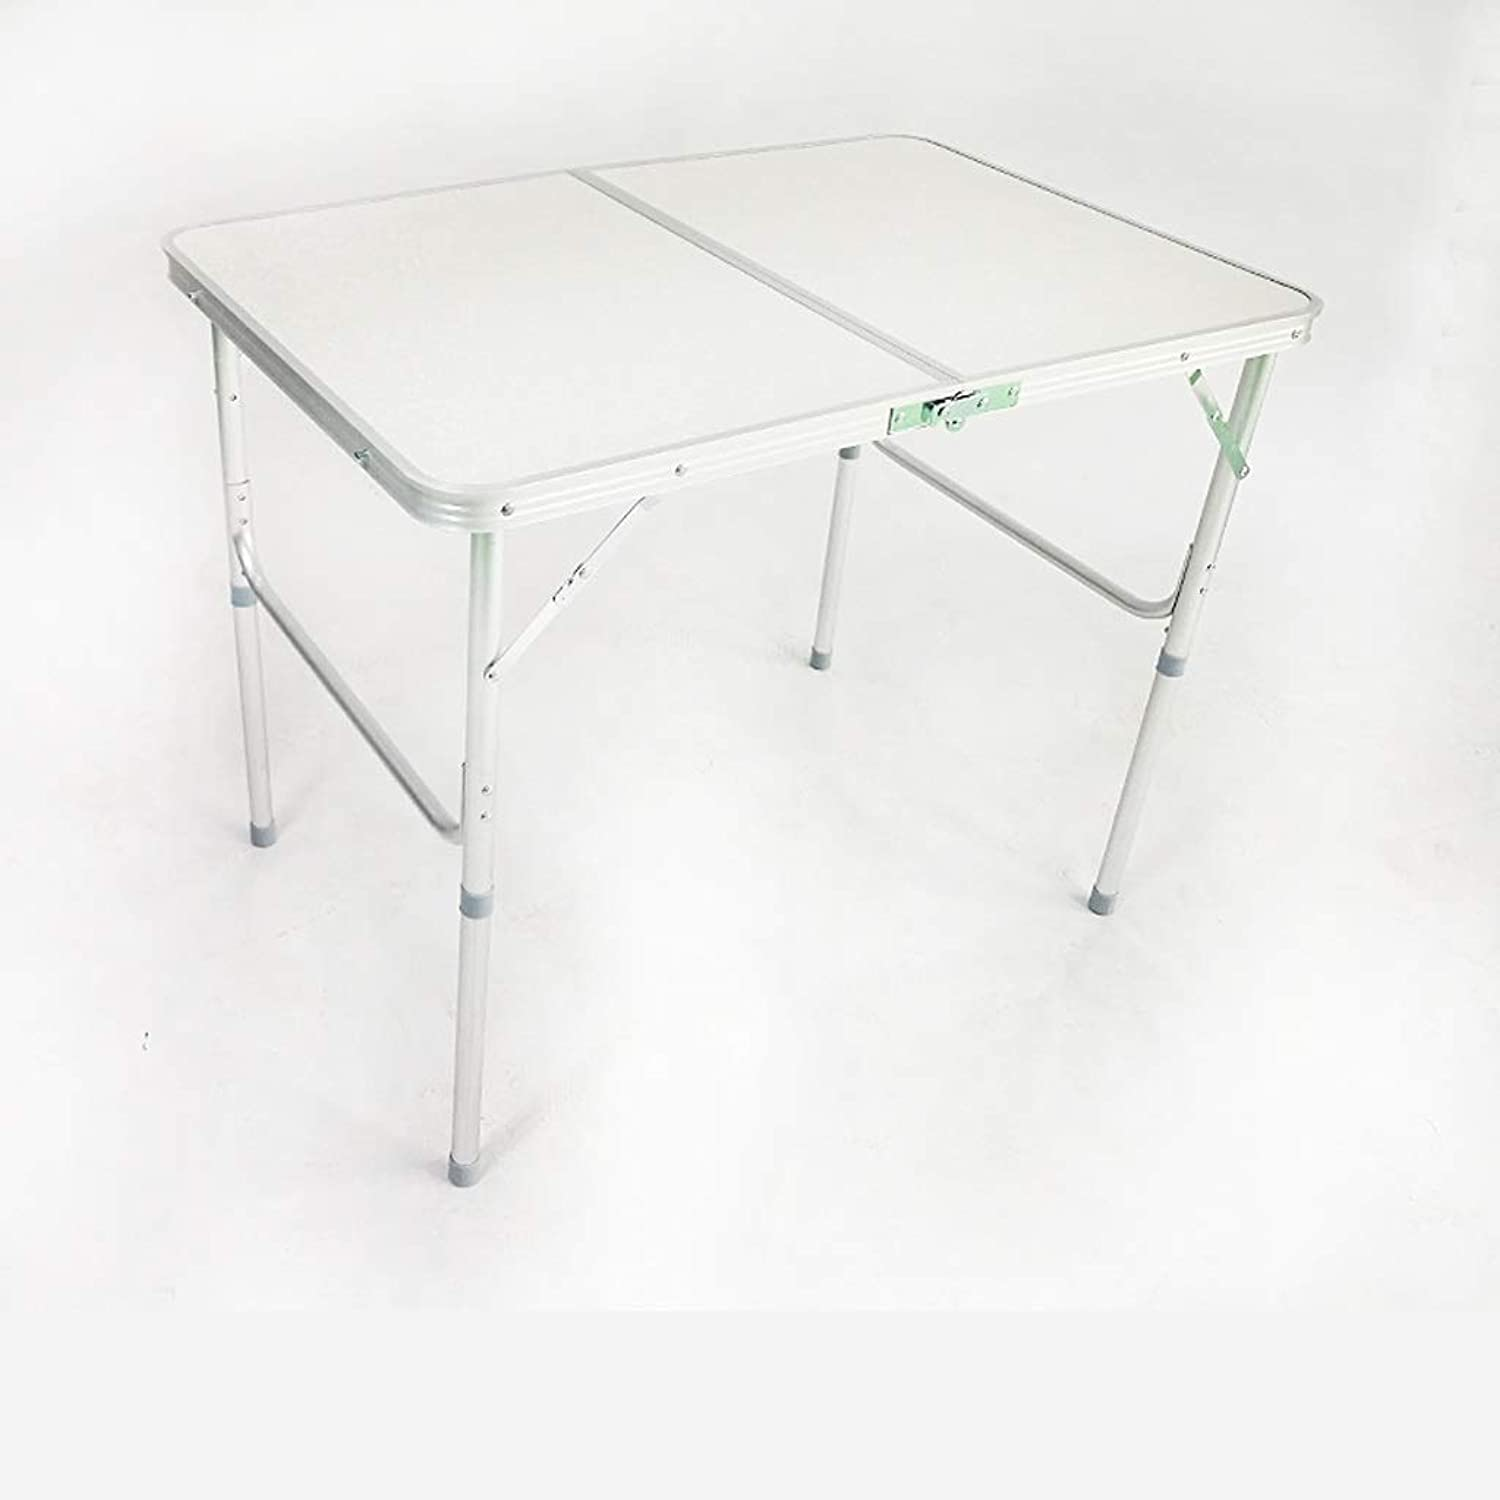 SHWSM Folding Table Outdoor Folding Table Portable Folding Table Metal Folding Table Home Picnic Table Folding Table (color   White)